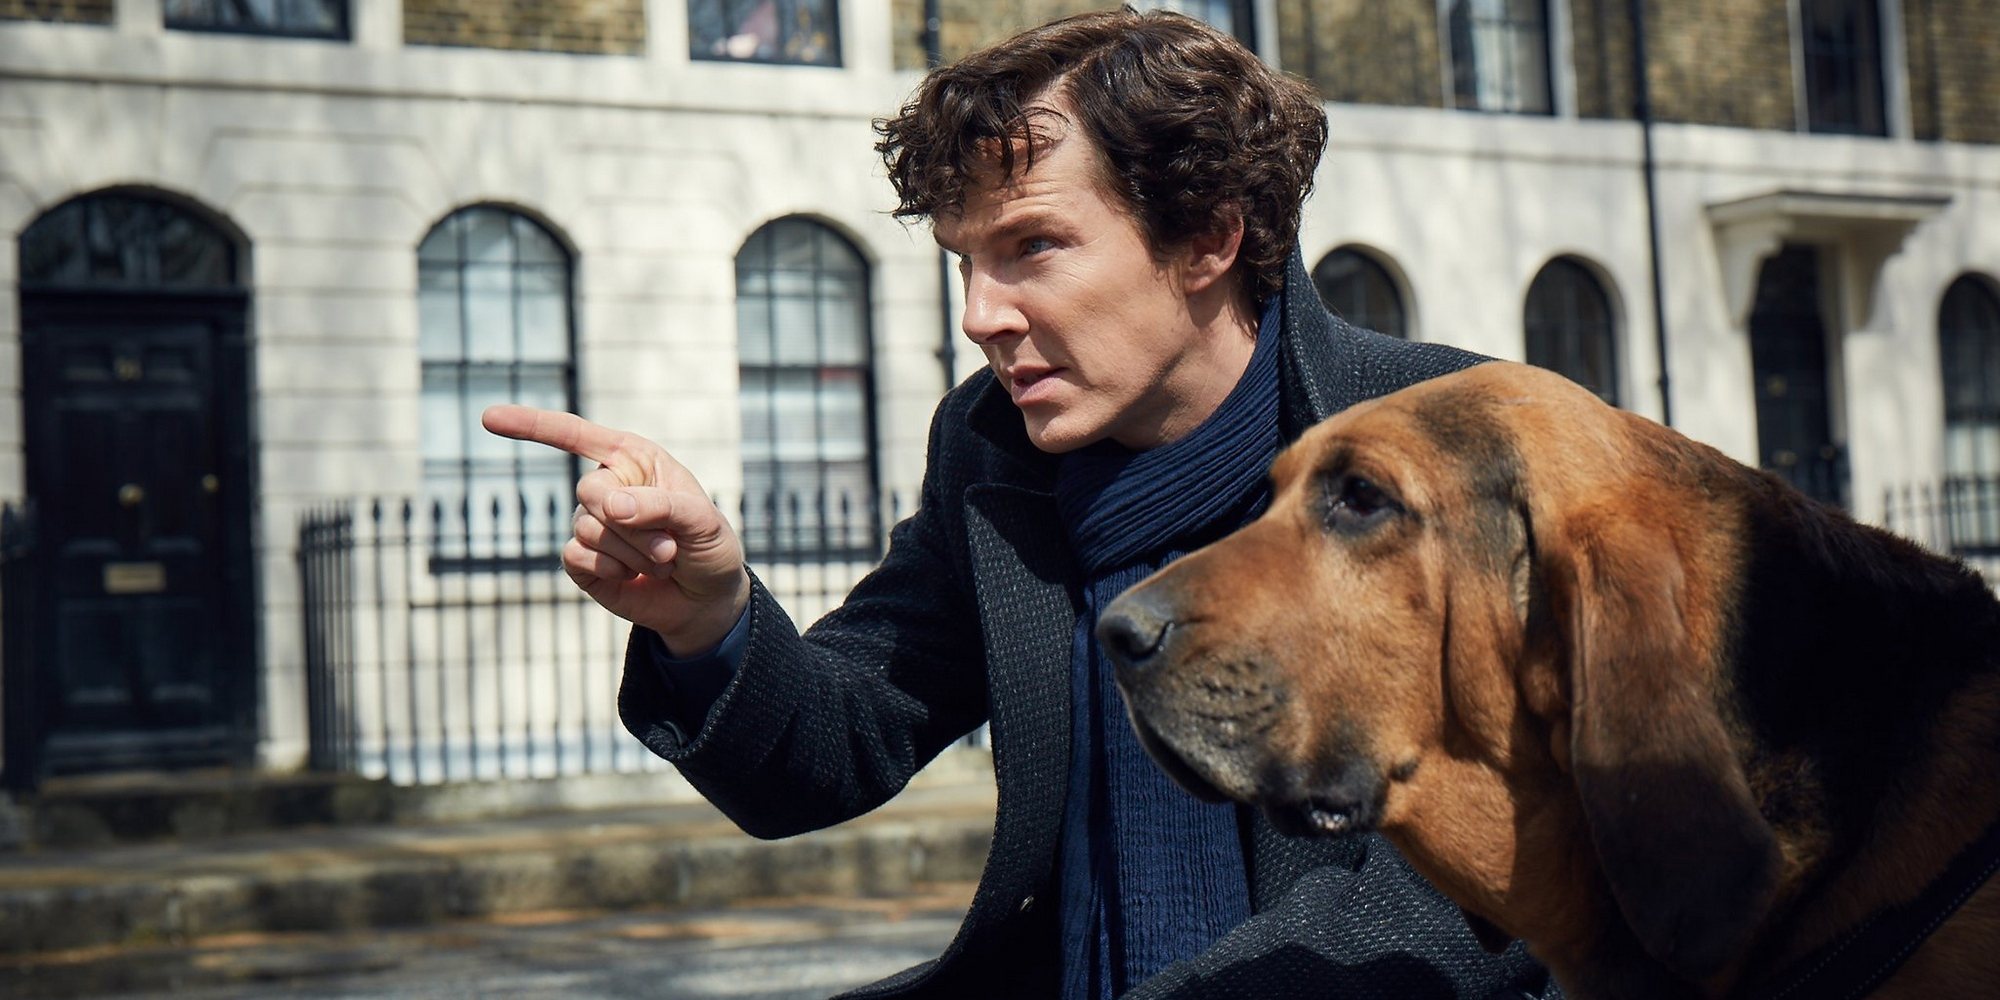 /images/upload/blog/1676/1676_Sherlock-Season-4-Sherlock-with-dog.jpg